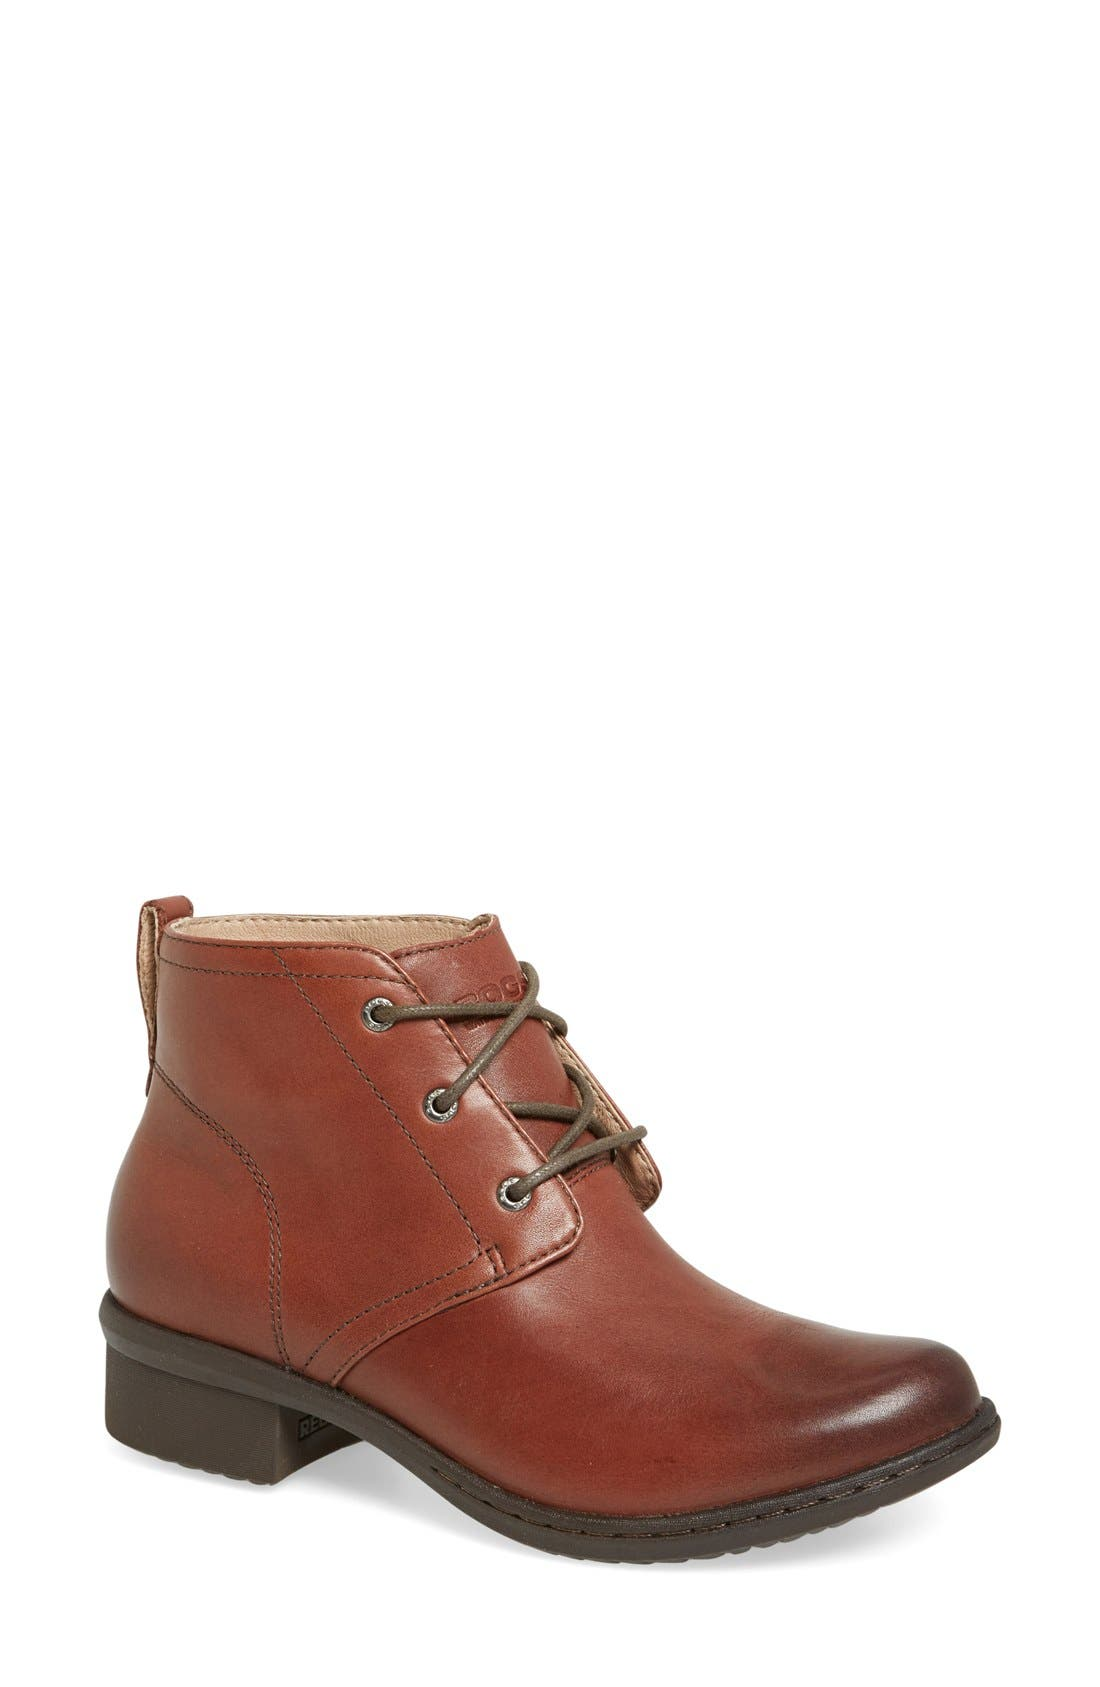 Bogs 'Kristina' Waterproof Chukka Boot (Women)